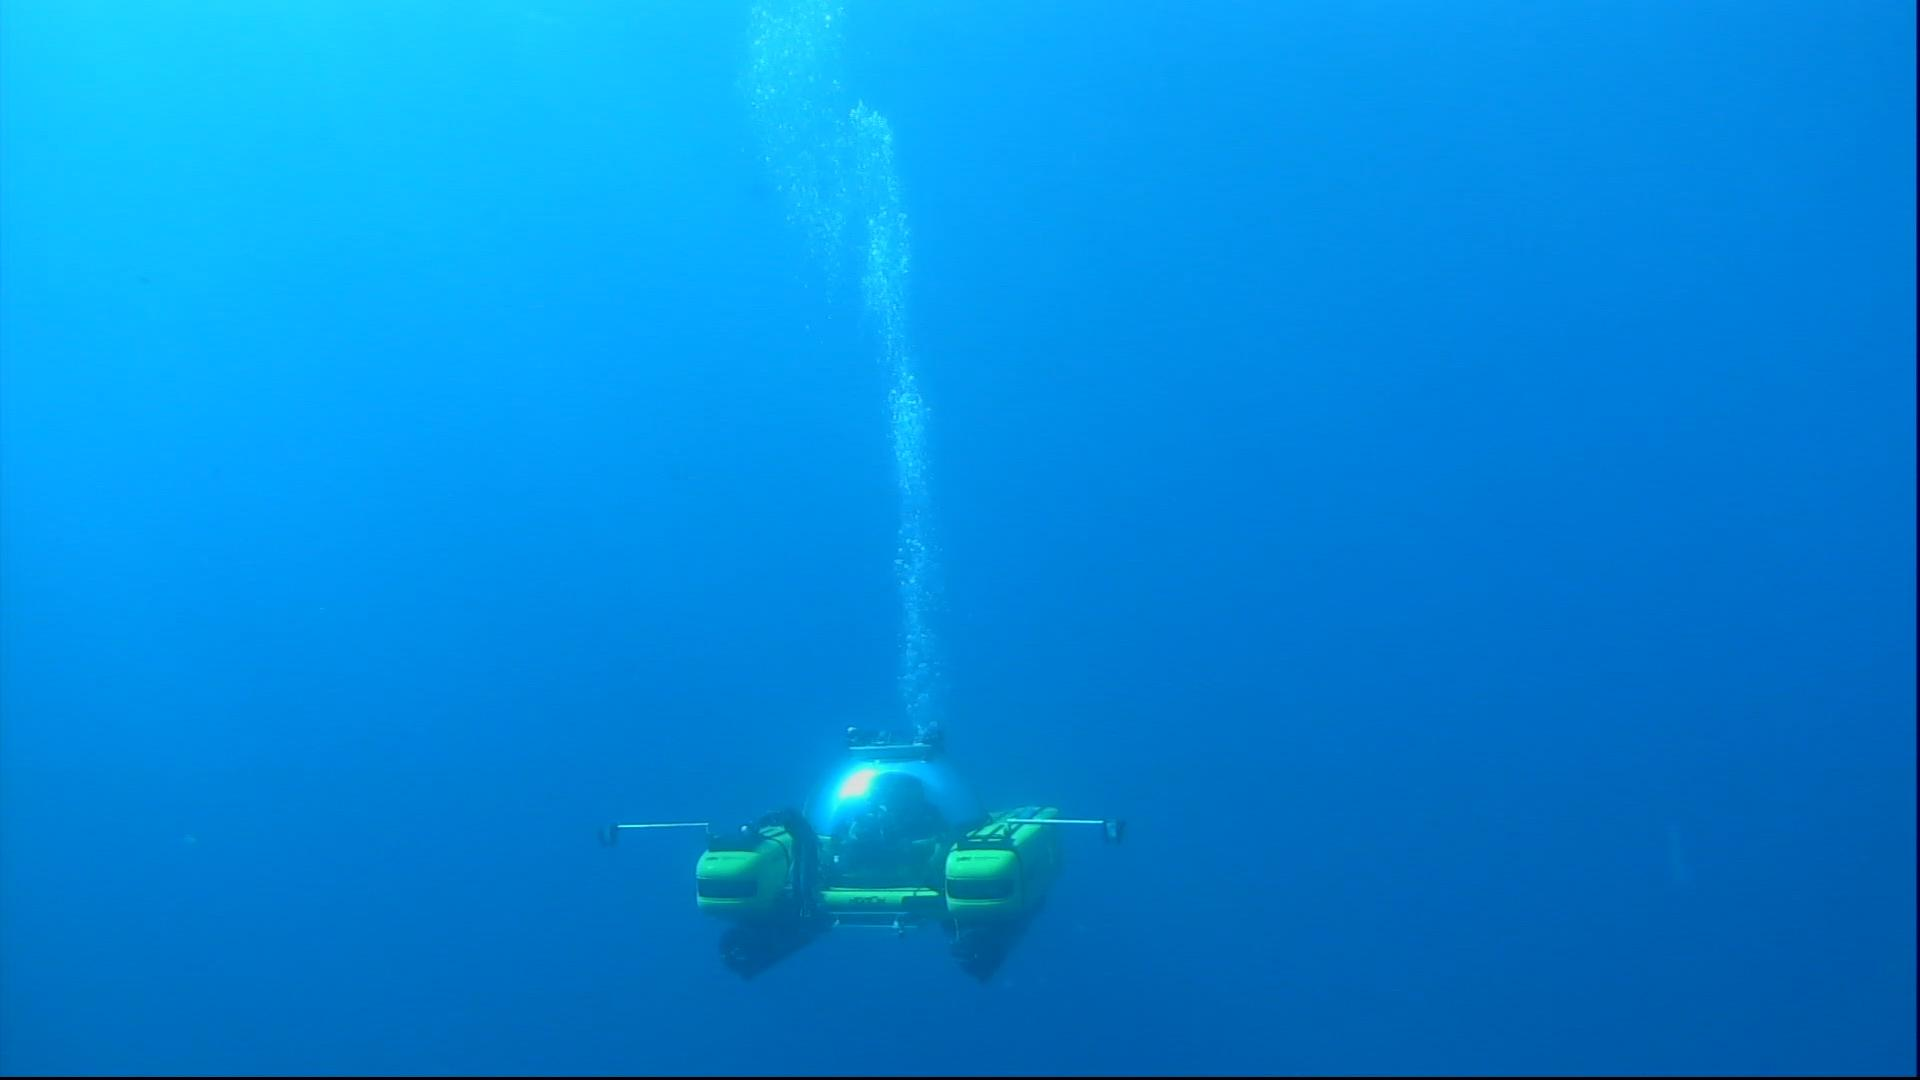 EM 2 Submersible equipped with Teledyne Bowtech lights and cameras